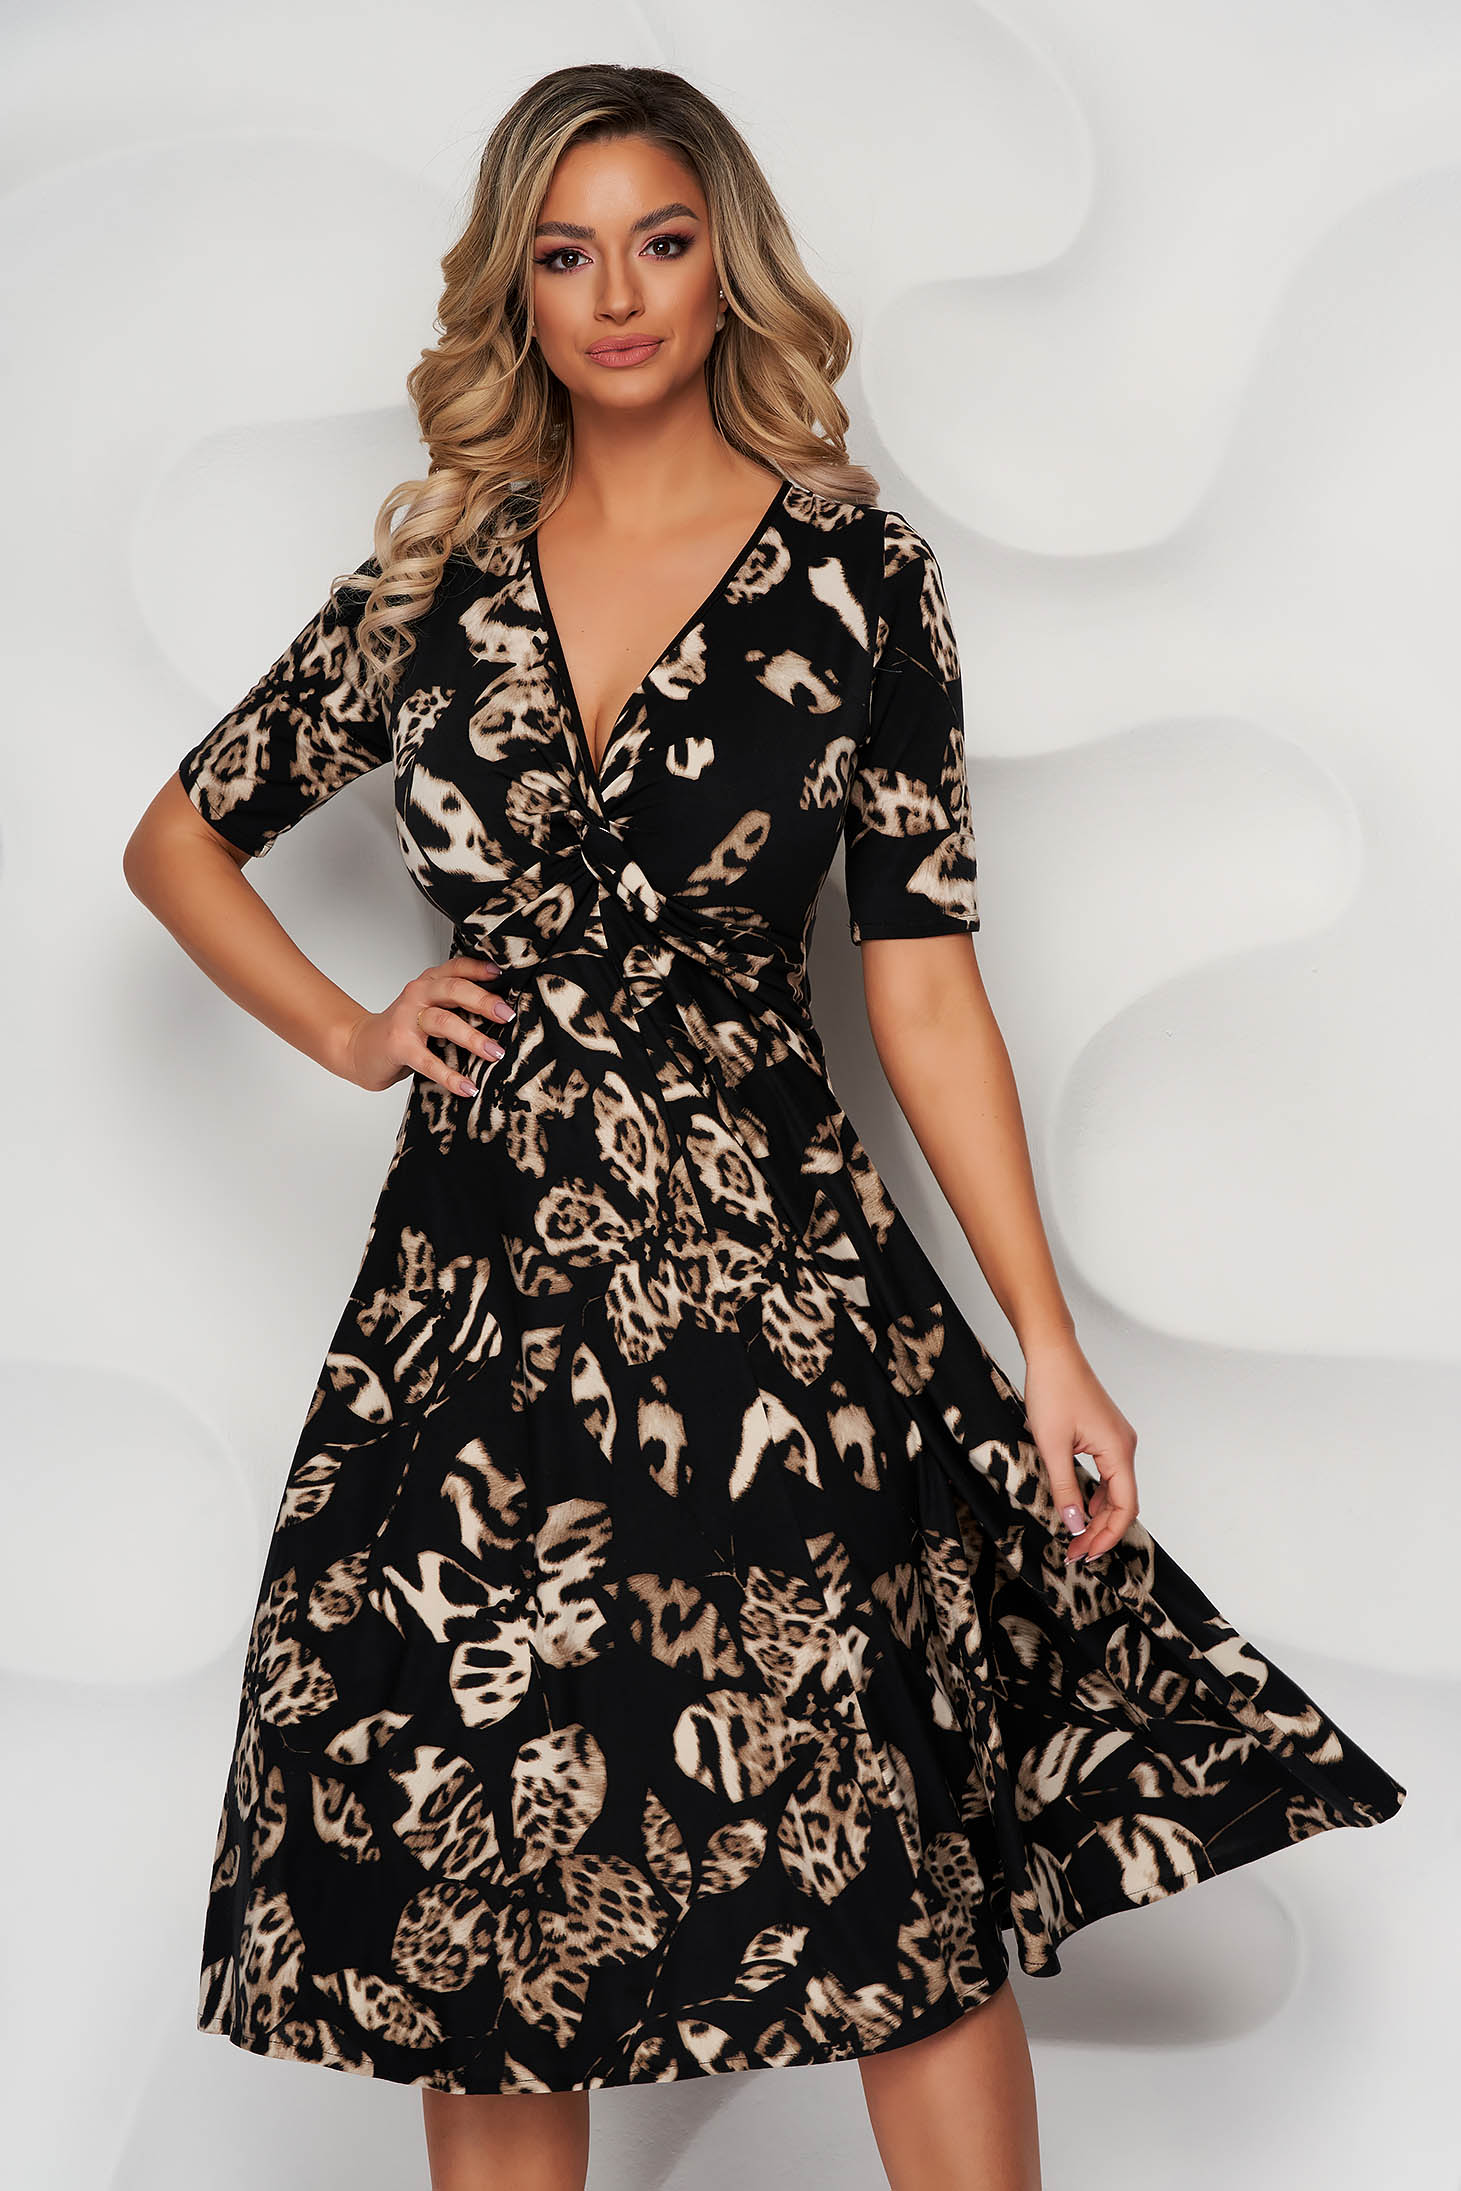 Black dress from elastic fabric with v-neckline